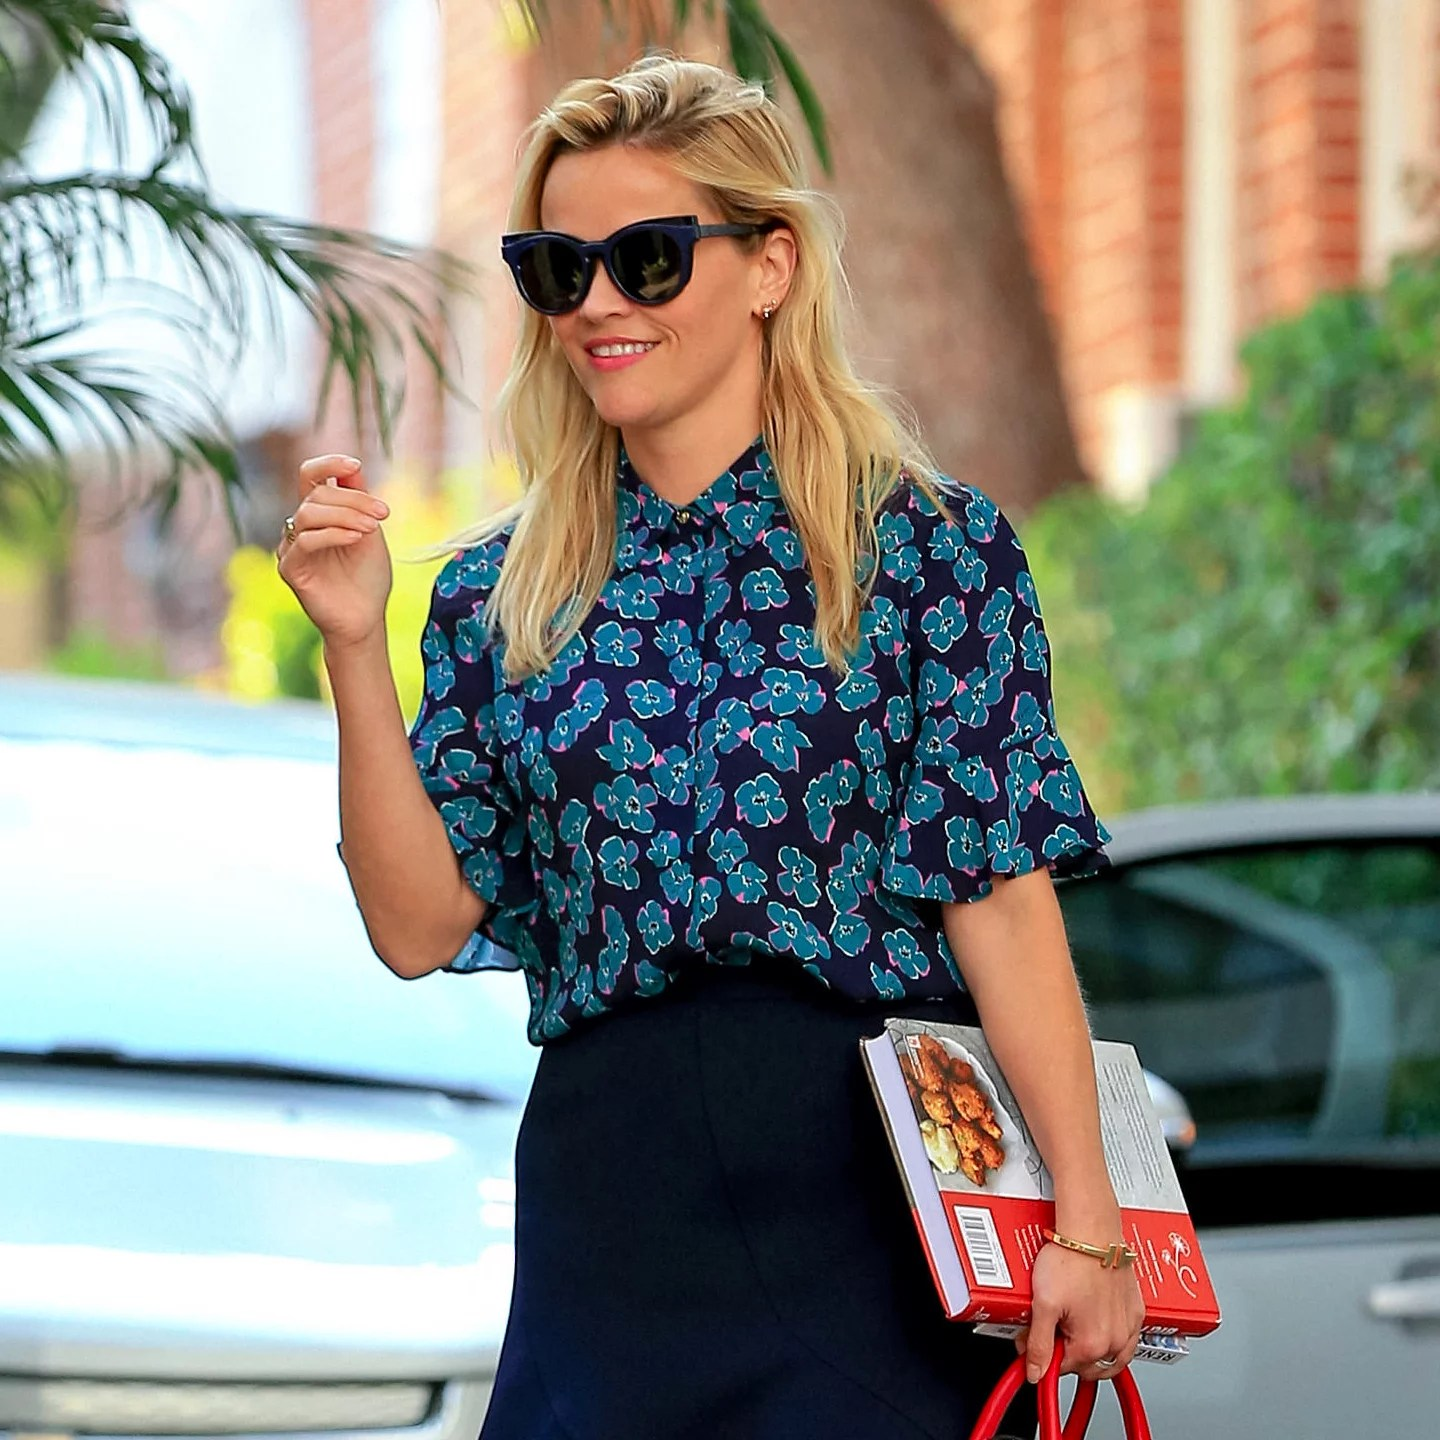 Reese Witherspoon Work Outfit Inspiration   POPSUGAR Fashion